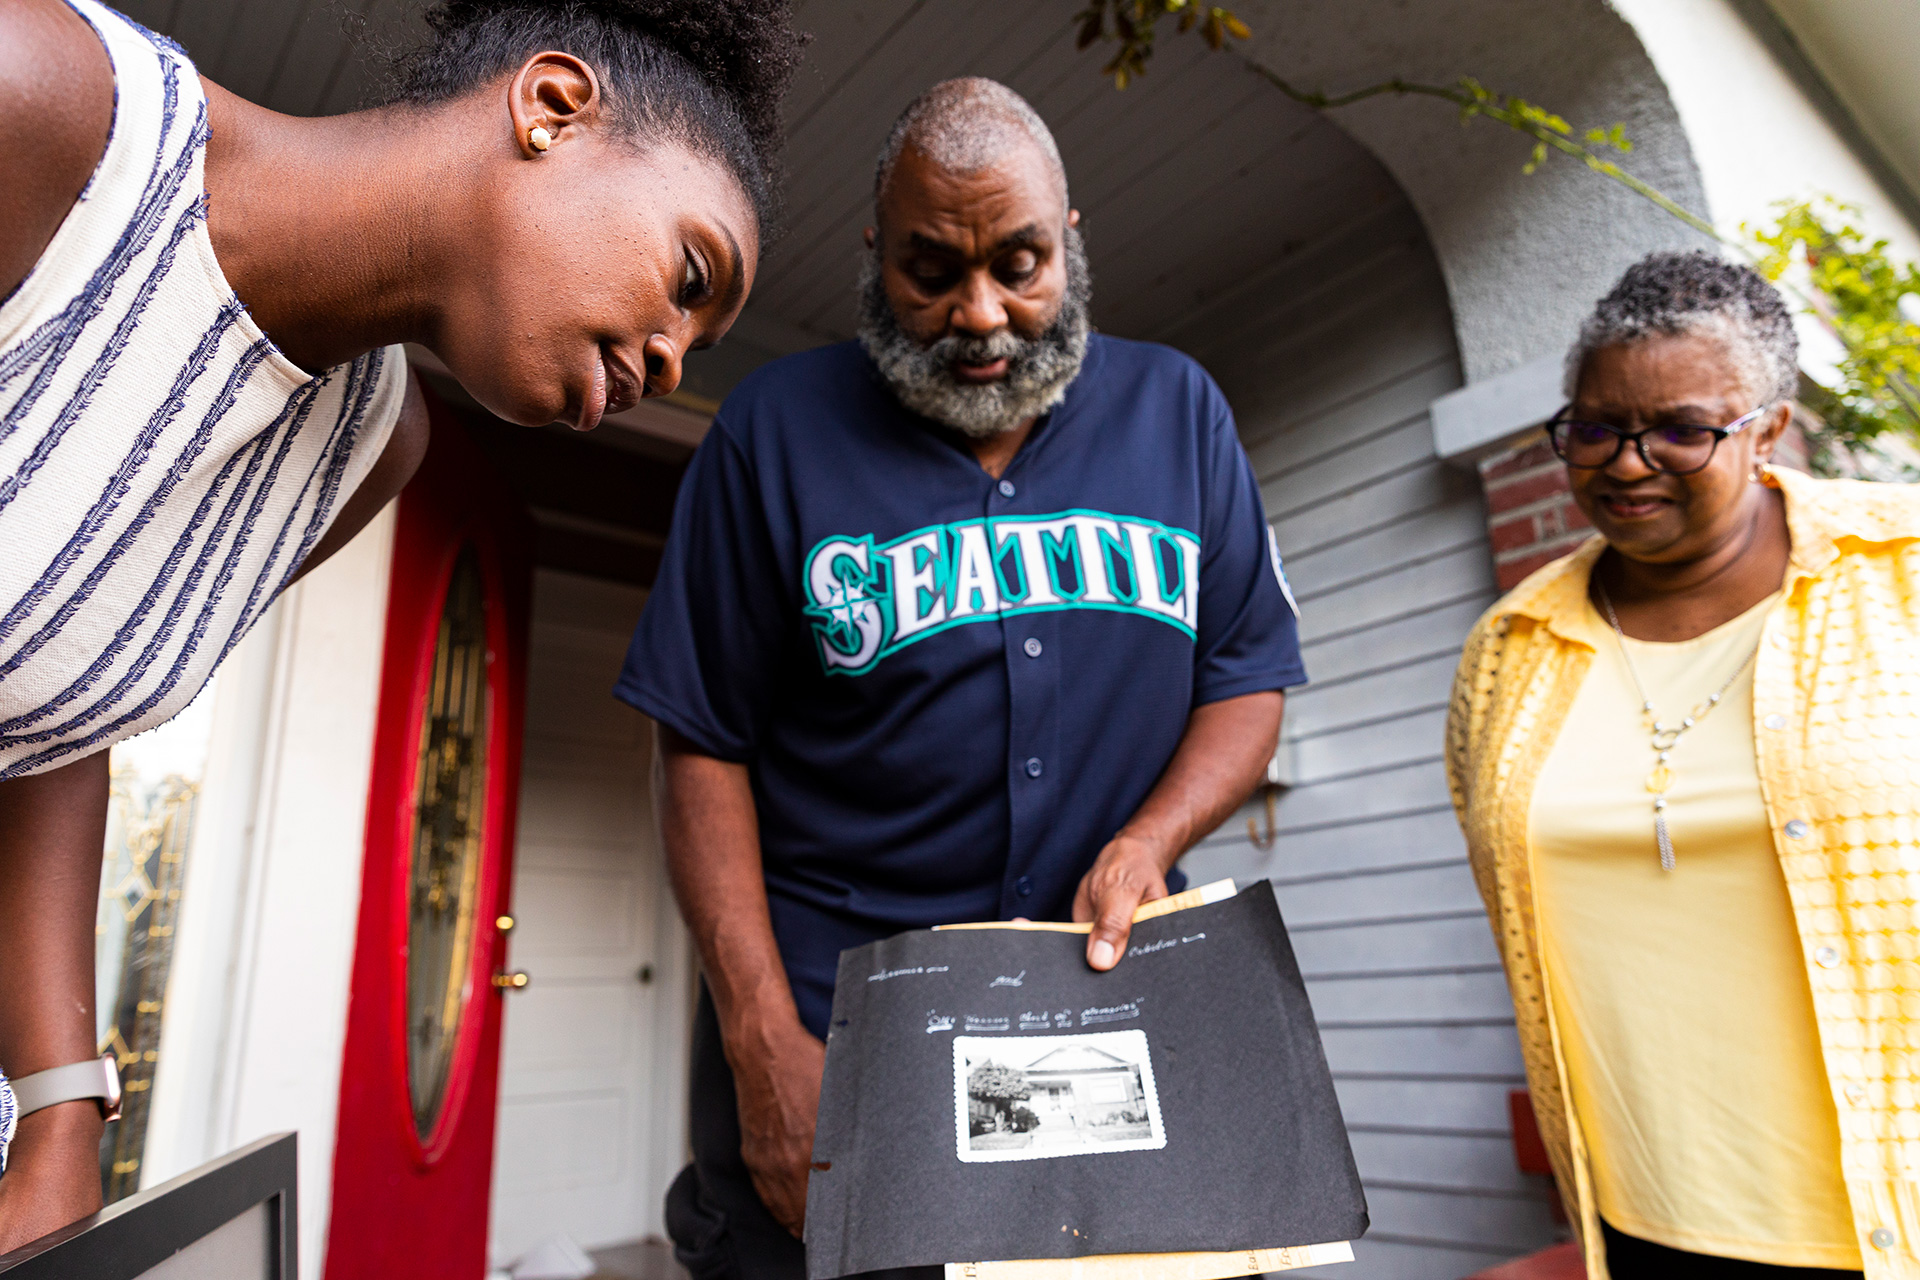 Thomas' parents, Deborah and Gregory Thomas, show a photo of their home from when it was first purchased by Danyelle's paternal grandfather.